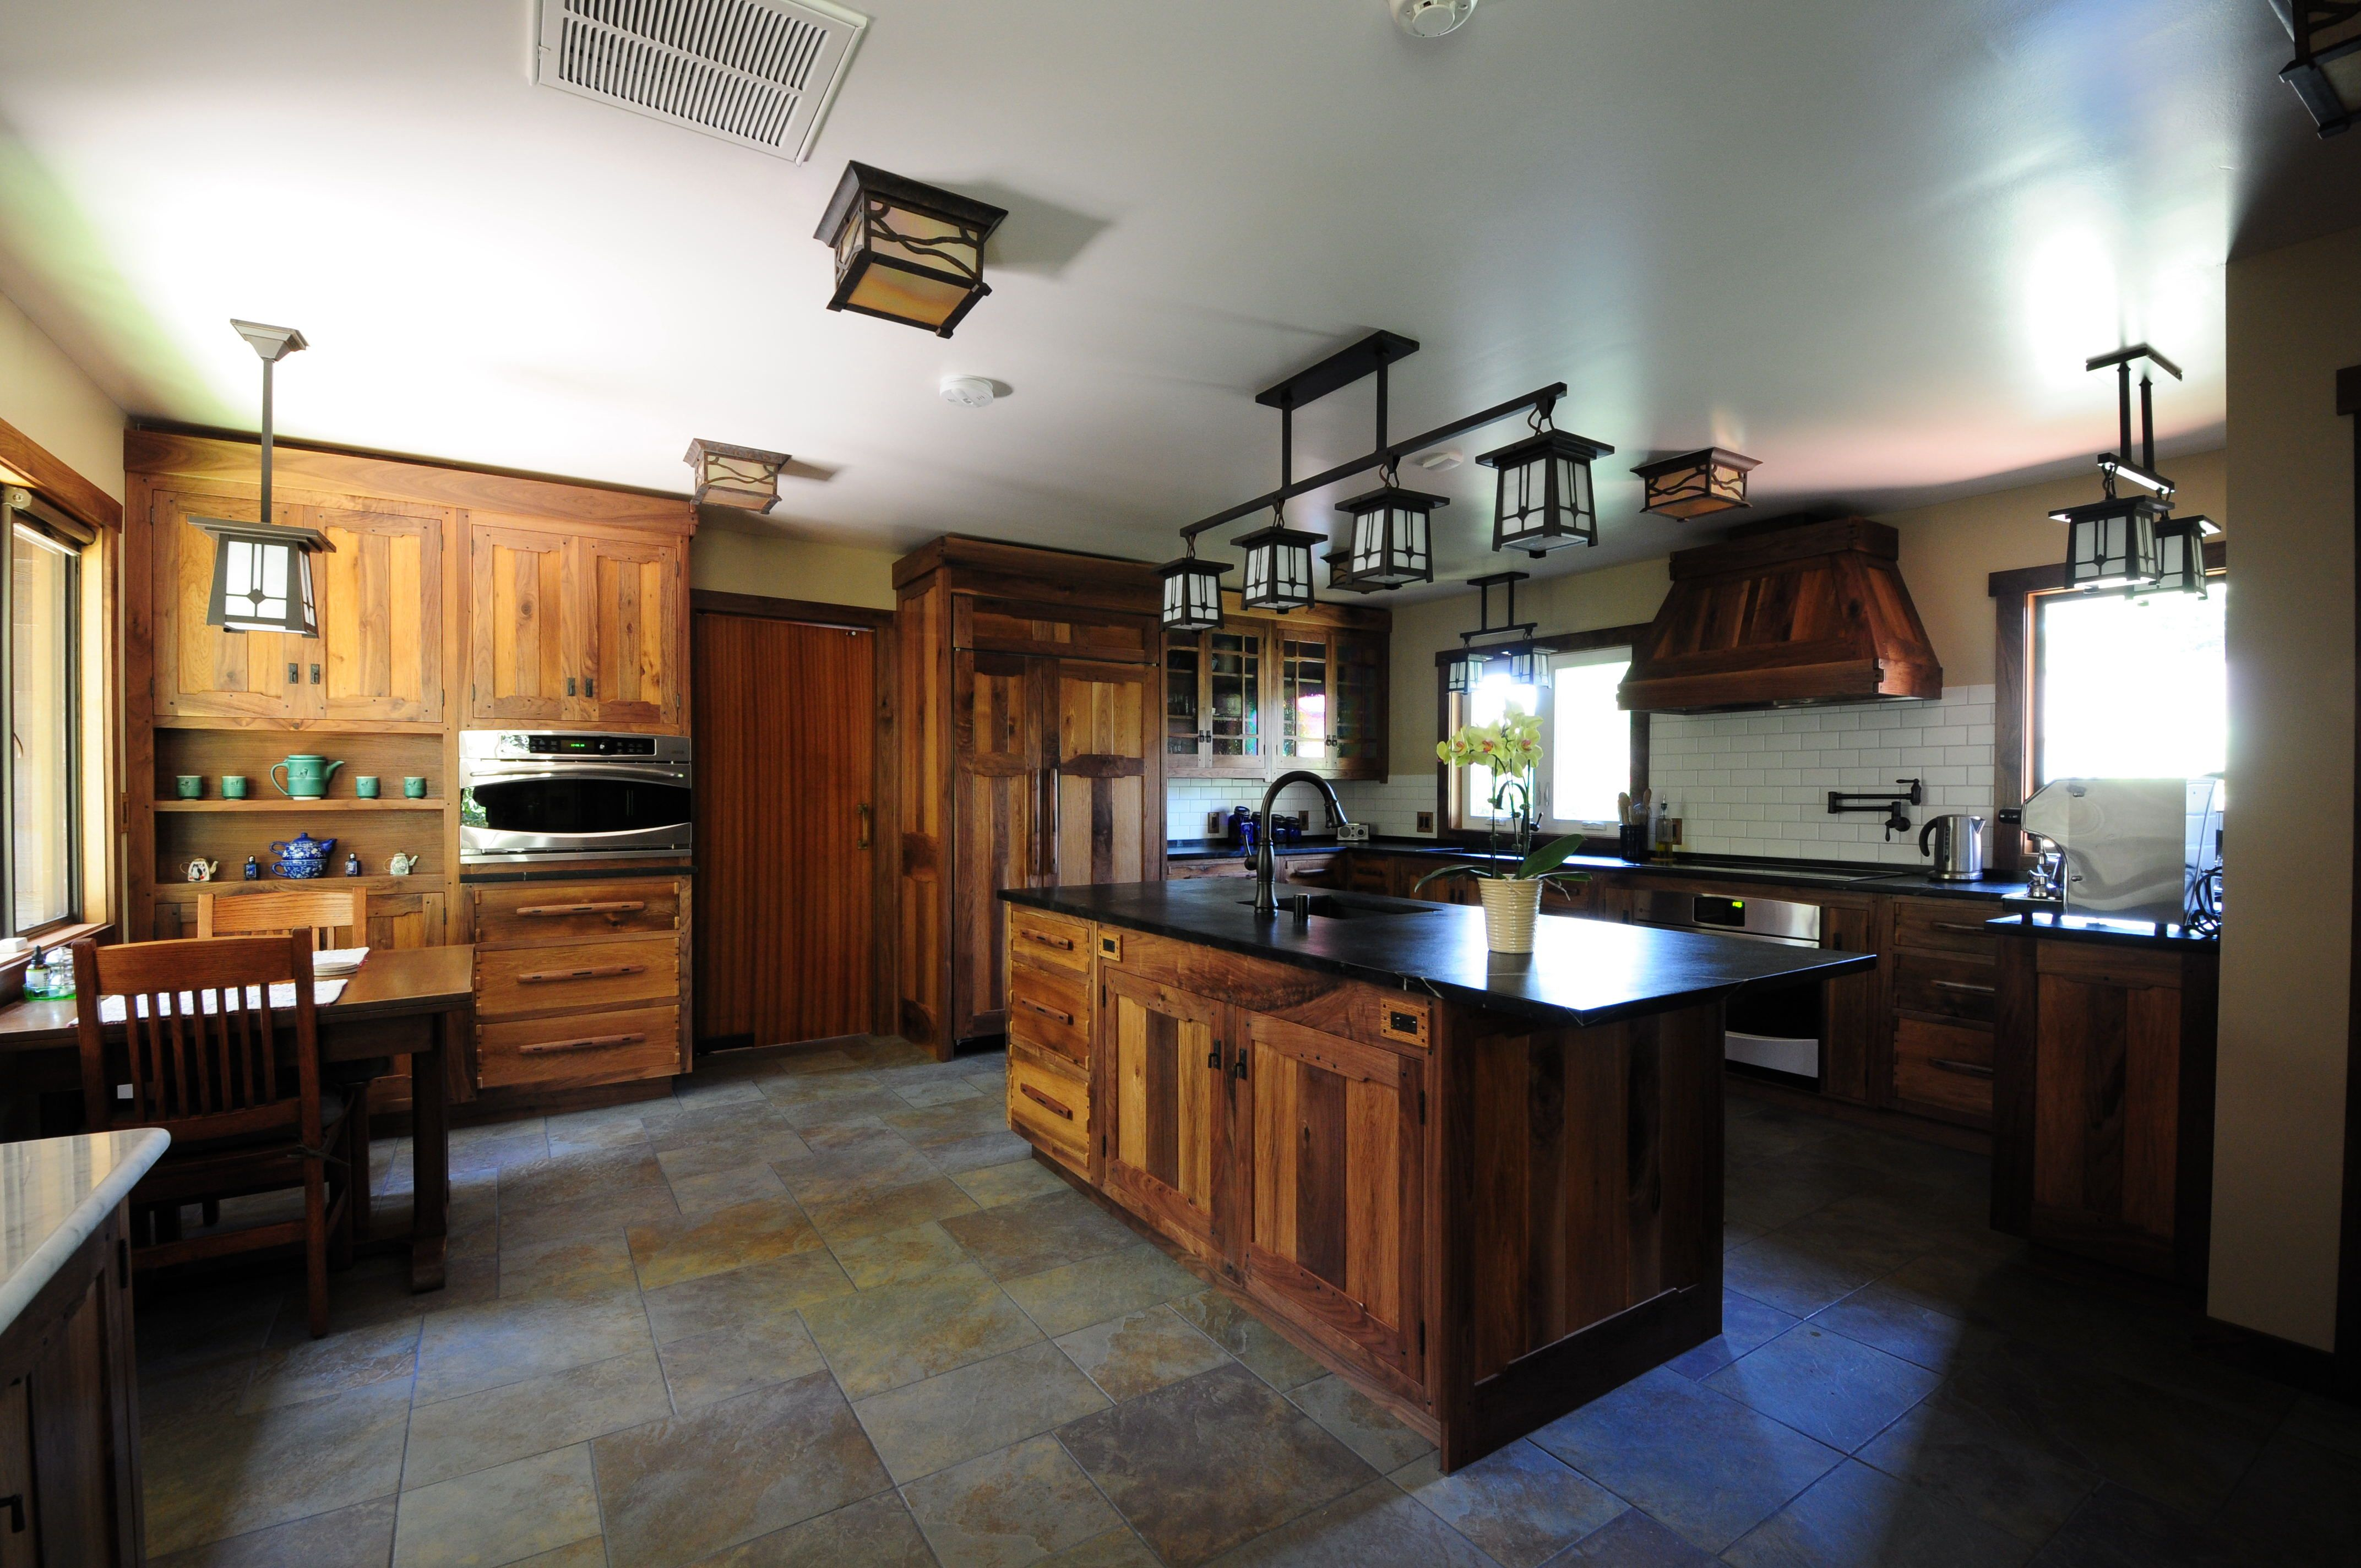 Best Lowes Kitchen Cabinets Of All Kinds Of Materials Rustic 400 x 300